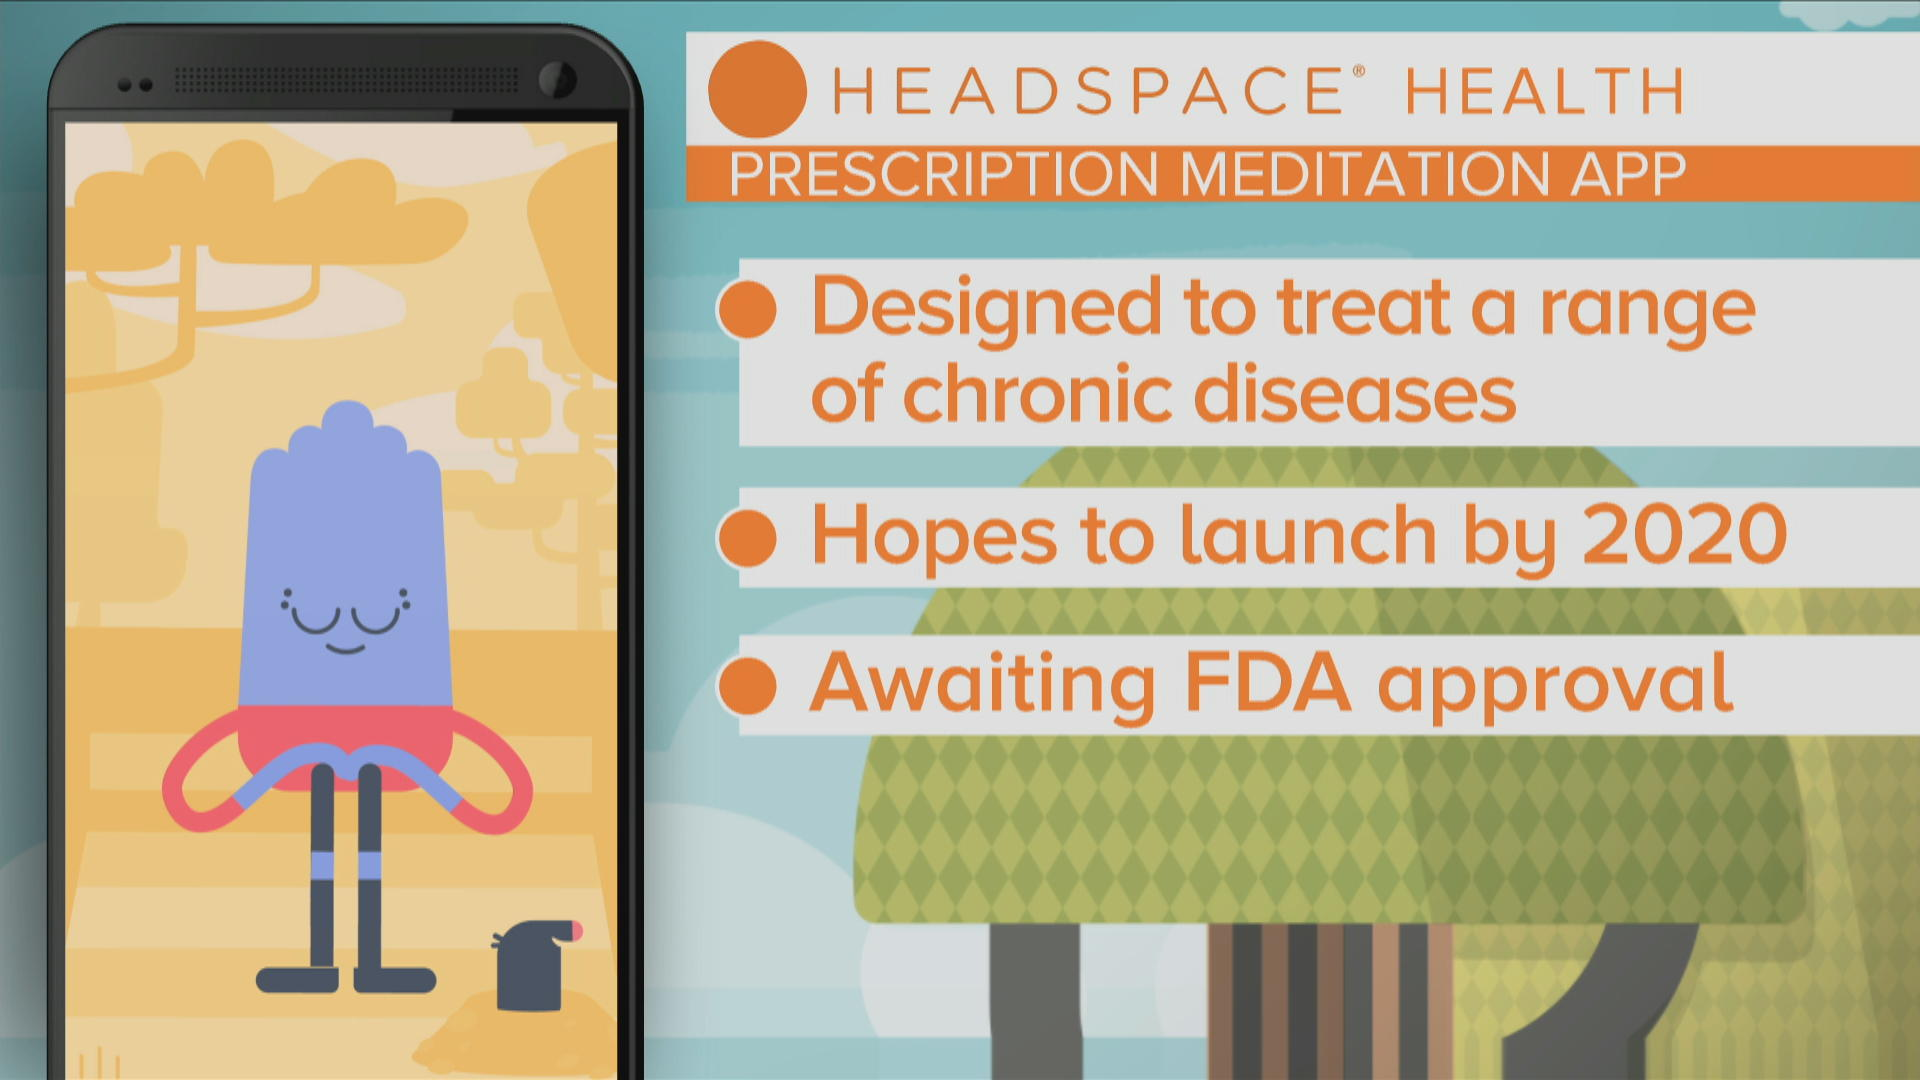 Headspace aims to be first FDA-approved prescription